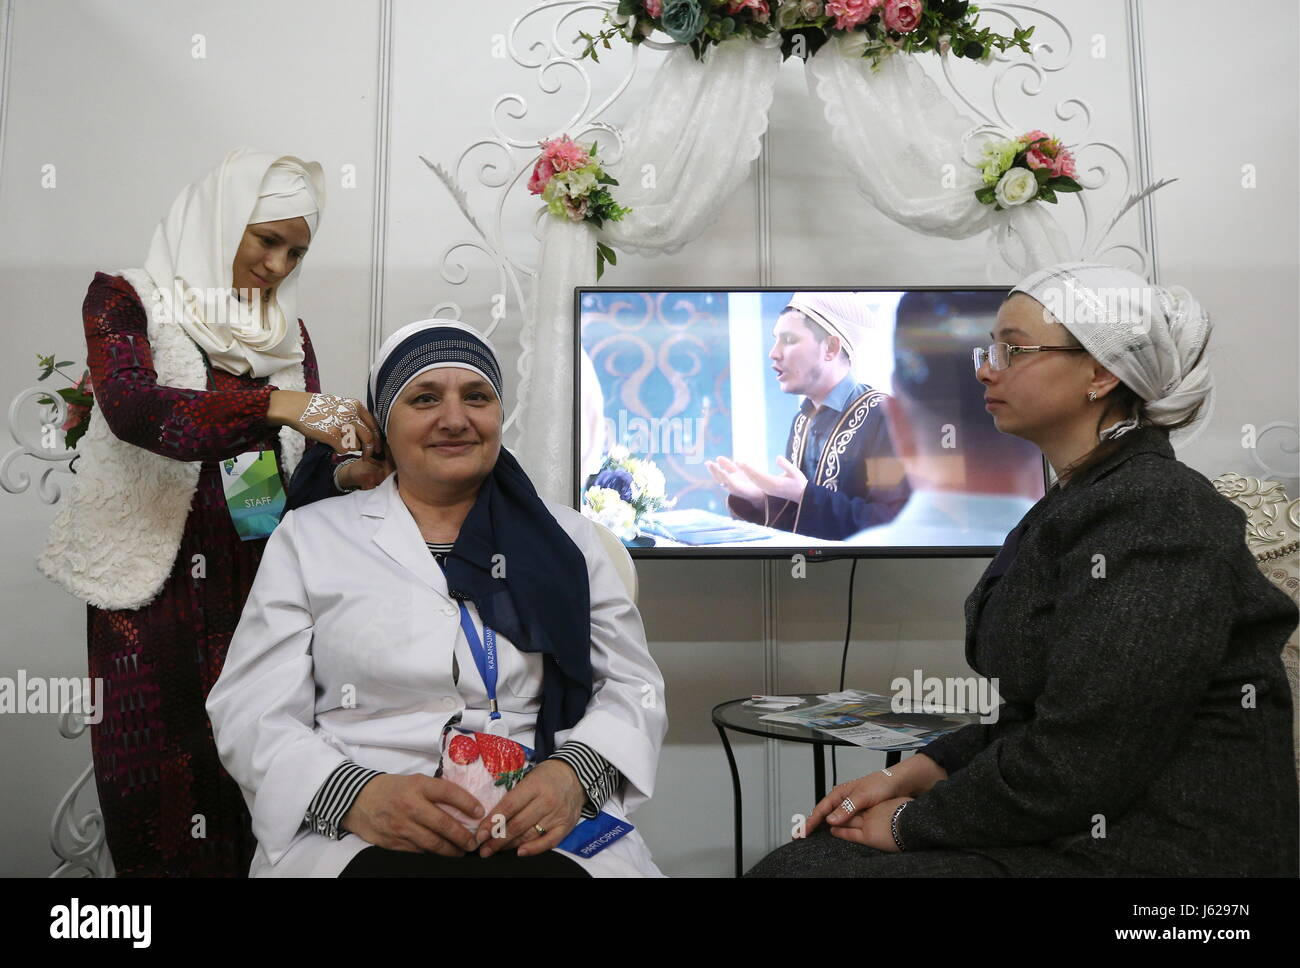 Kazan, Russia. 18th May, 2017. People attend the Russia Halal Expo exhibition as part of the 9th International Economic - Stock Image